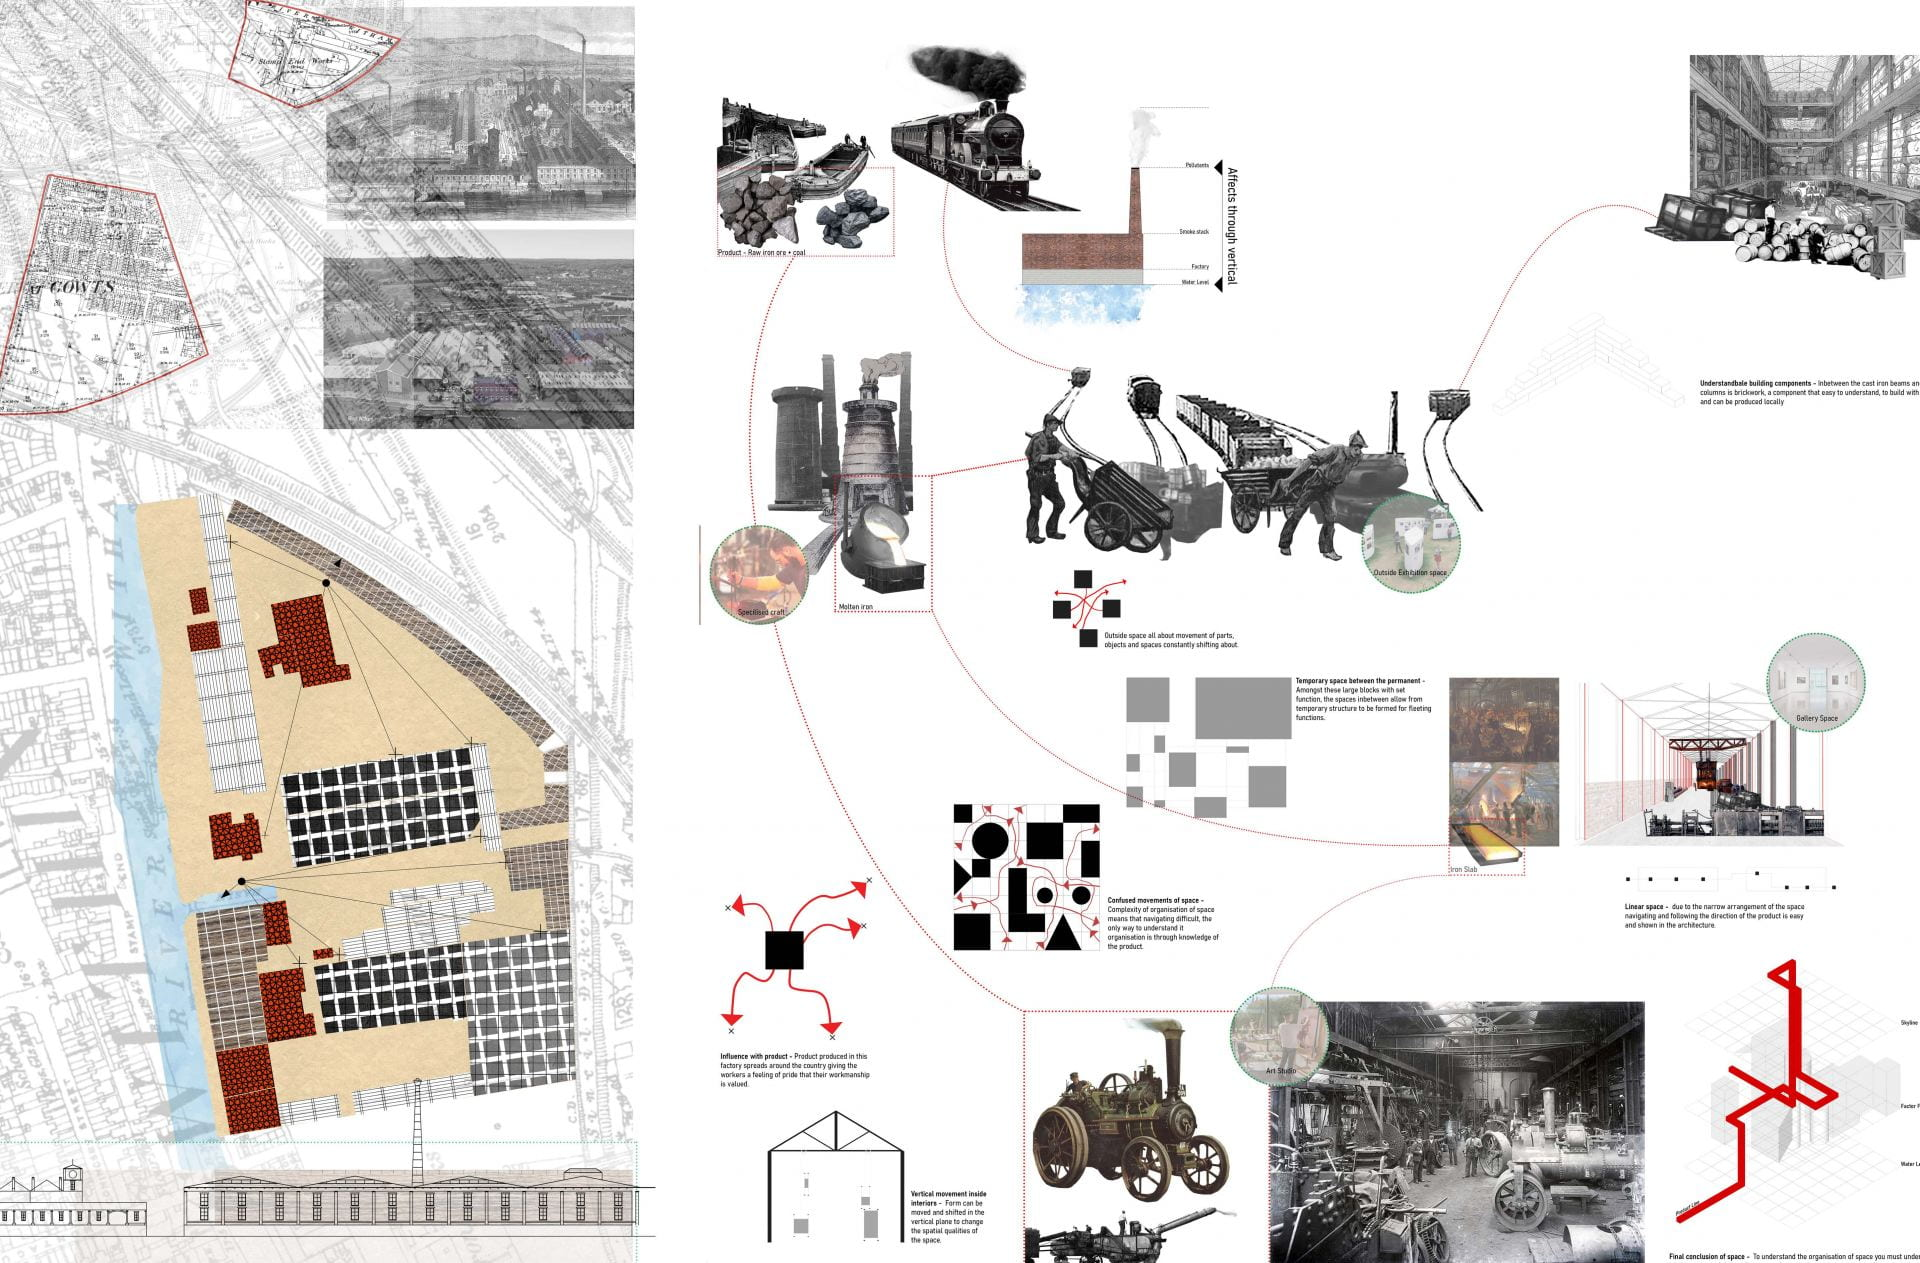 Analysis of program and spatial qualities of one of these lost production space, the Stamp End Iron Works.